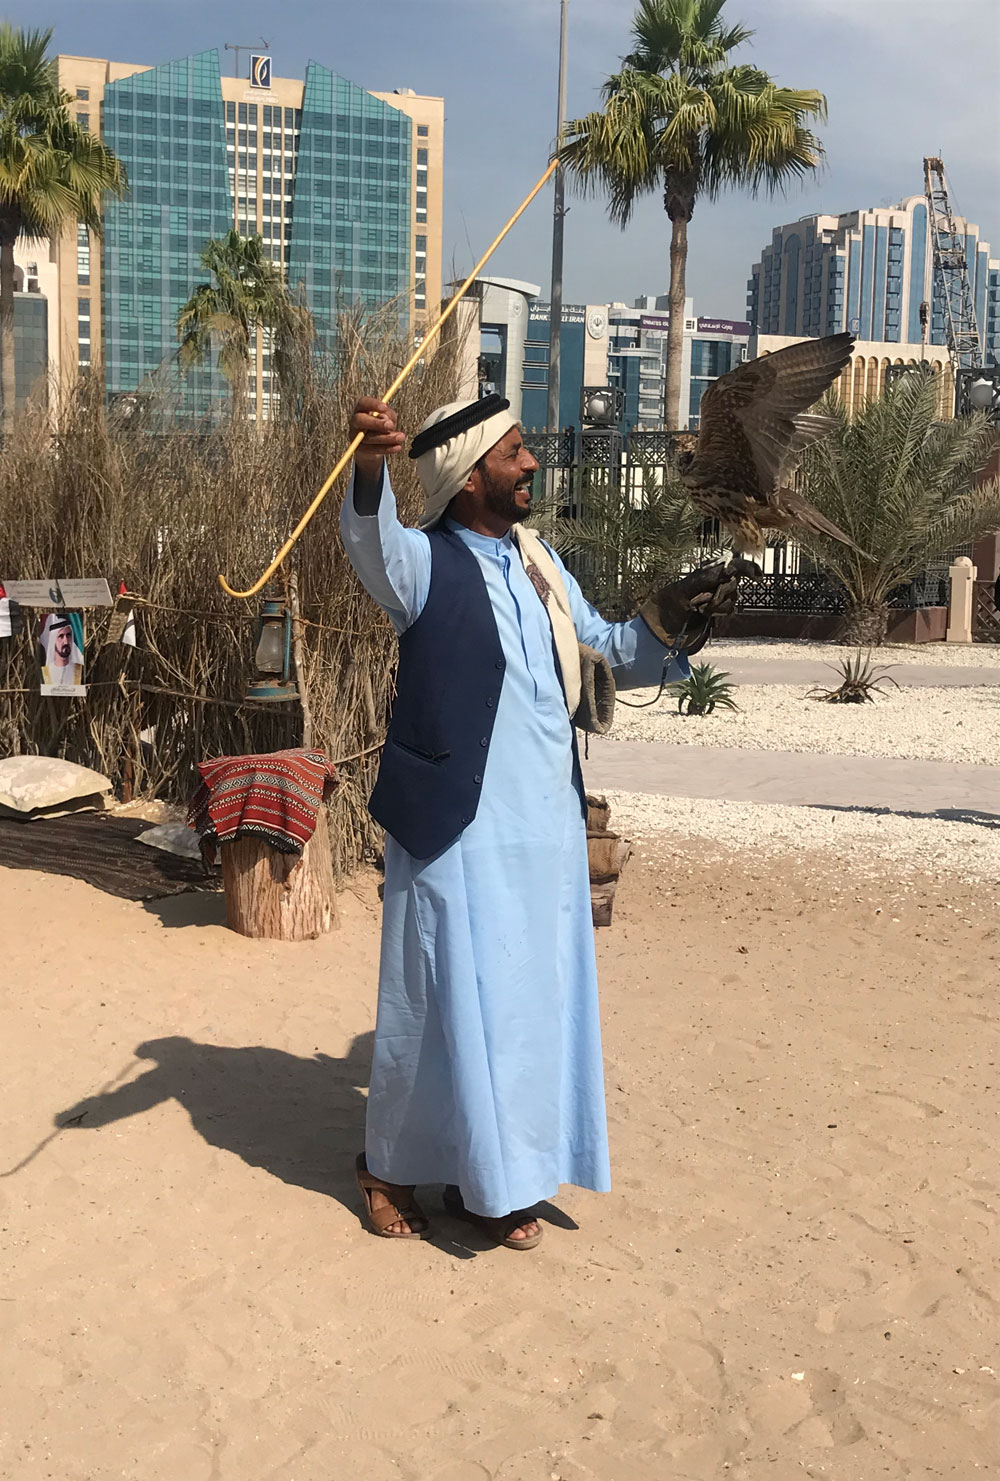 A man poses with his falcon in the historical Al Fahidi District.